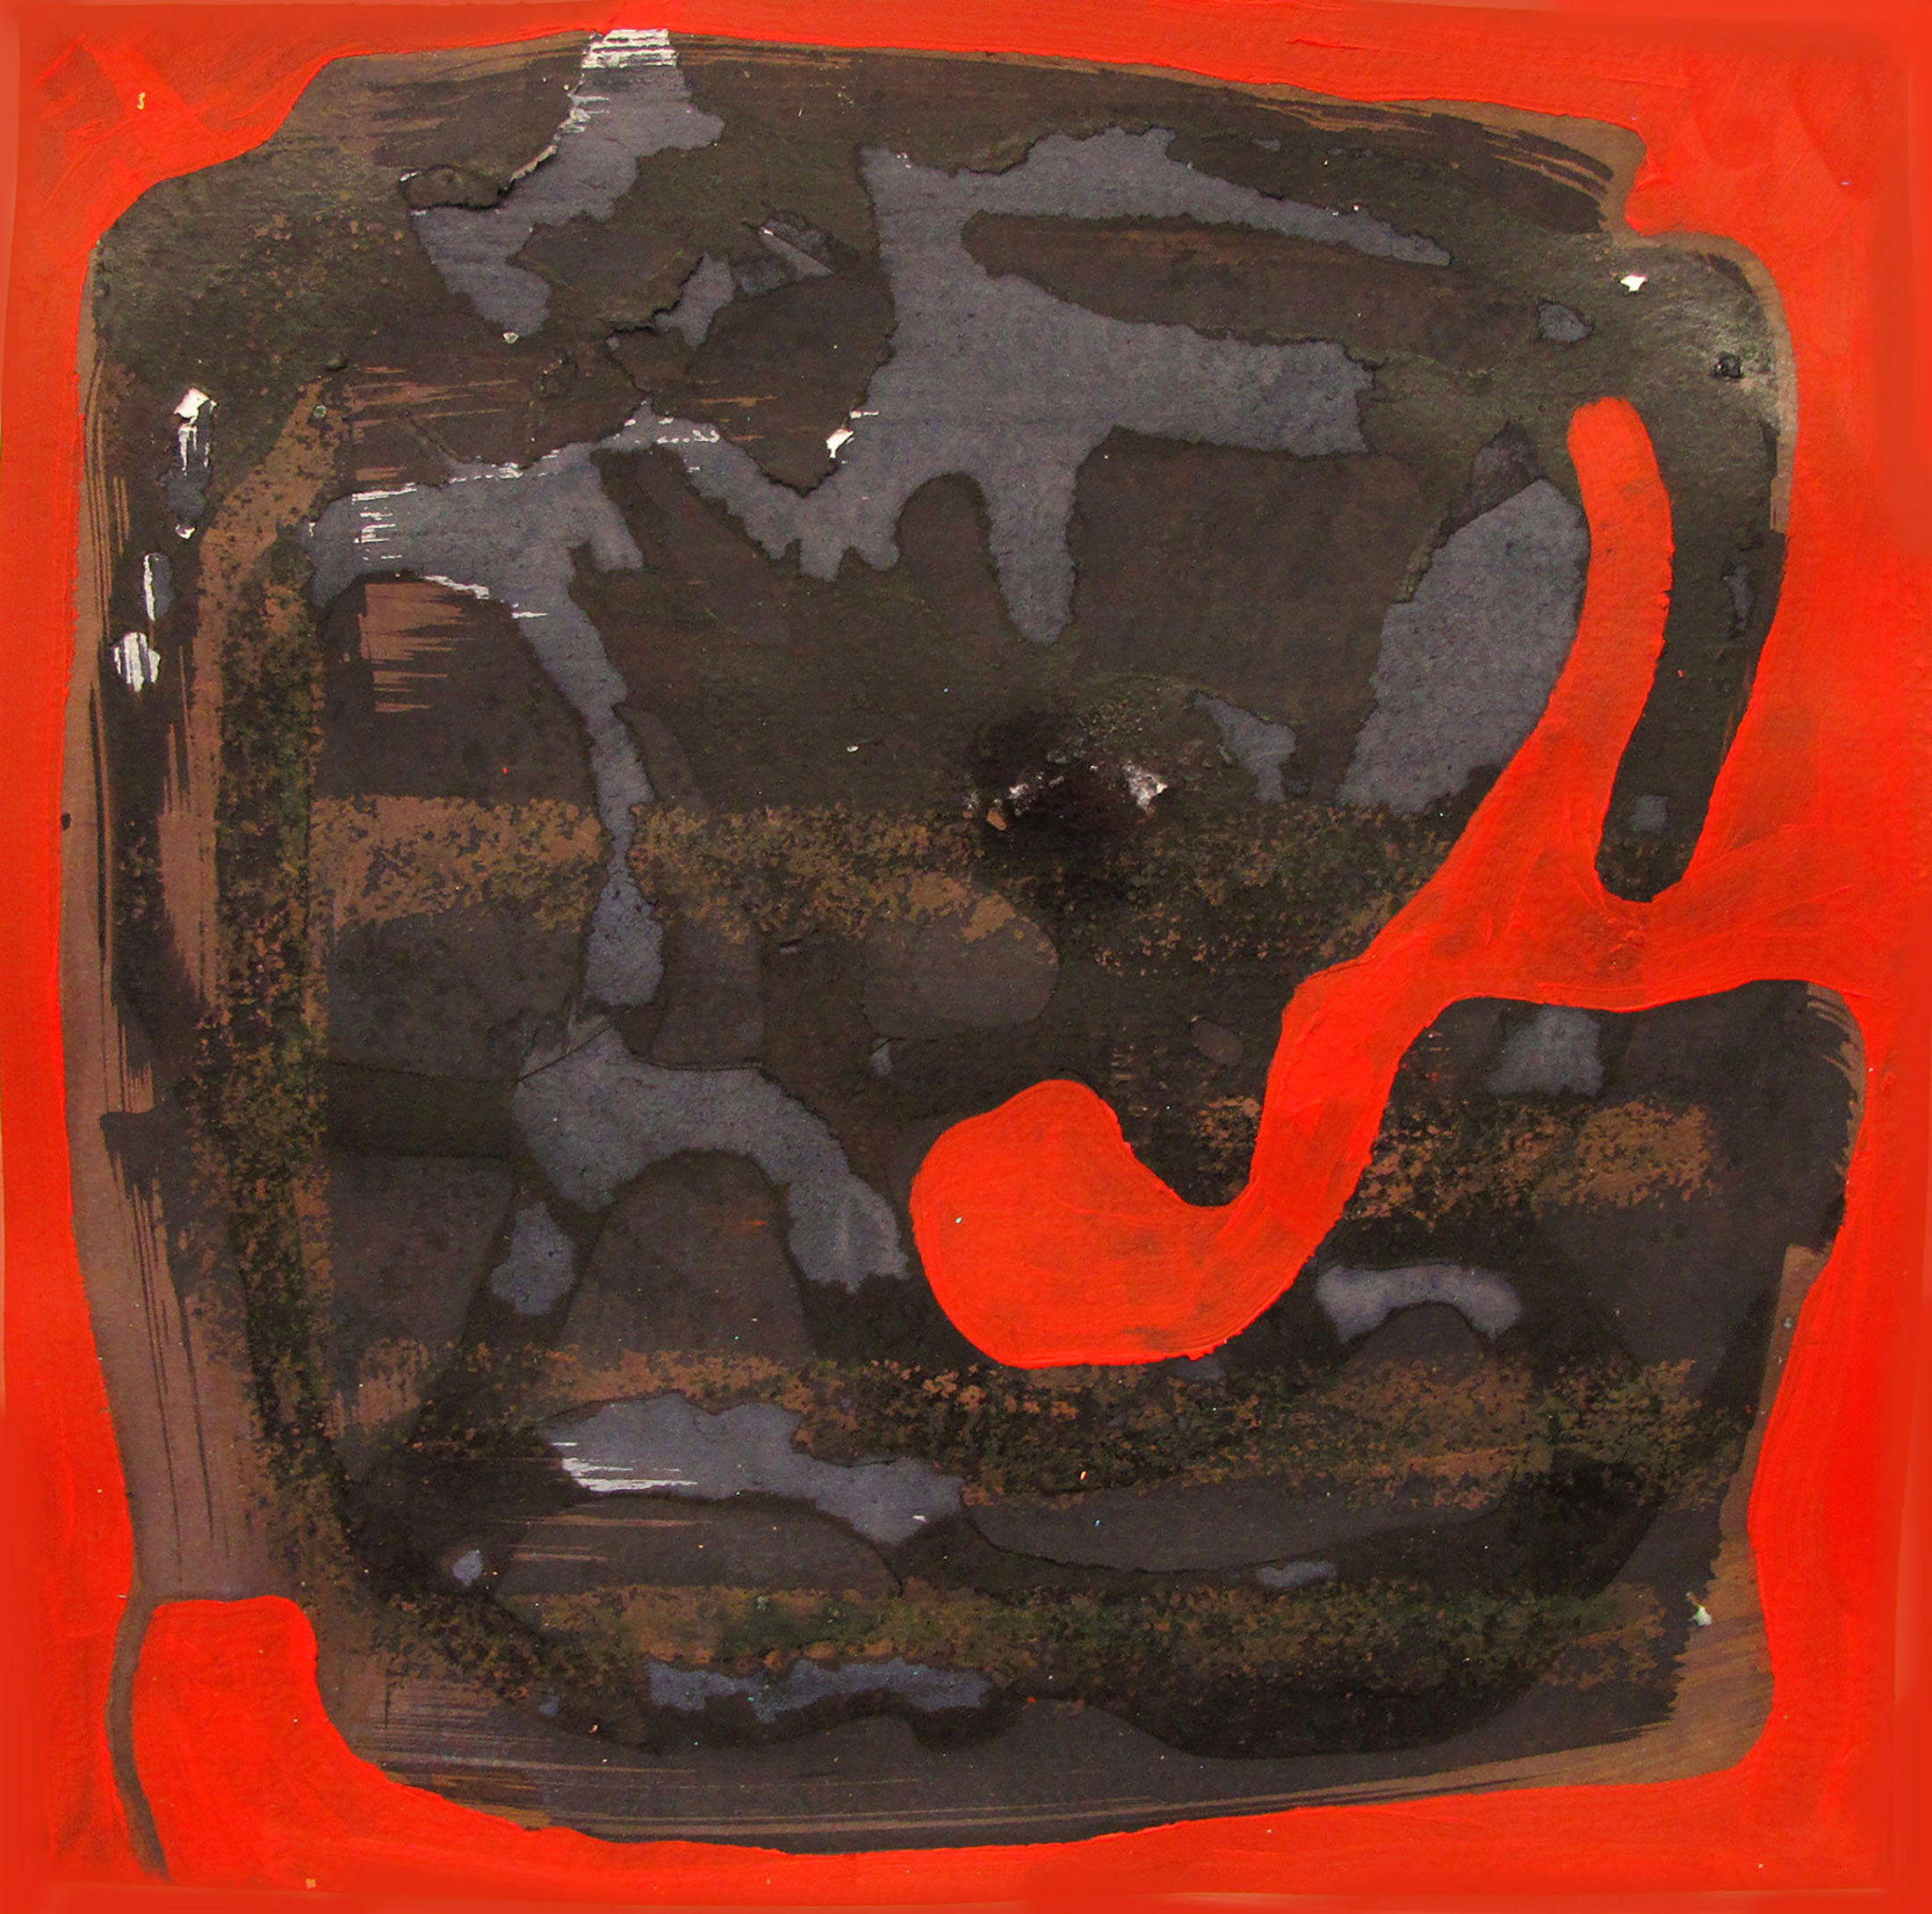 red, painting, black form, alexandra feusi, emerging artist, collecting art,